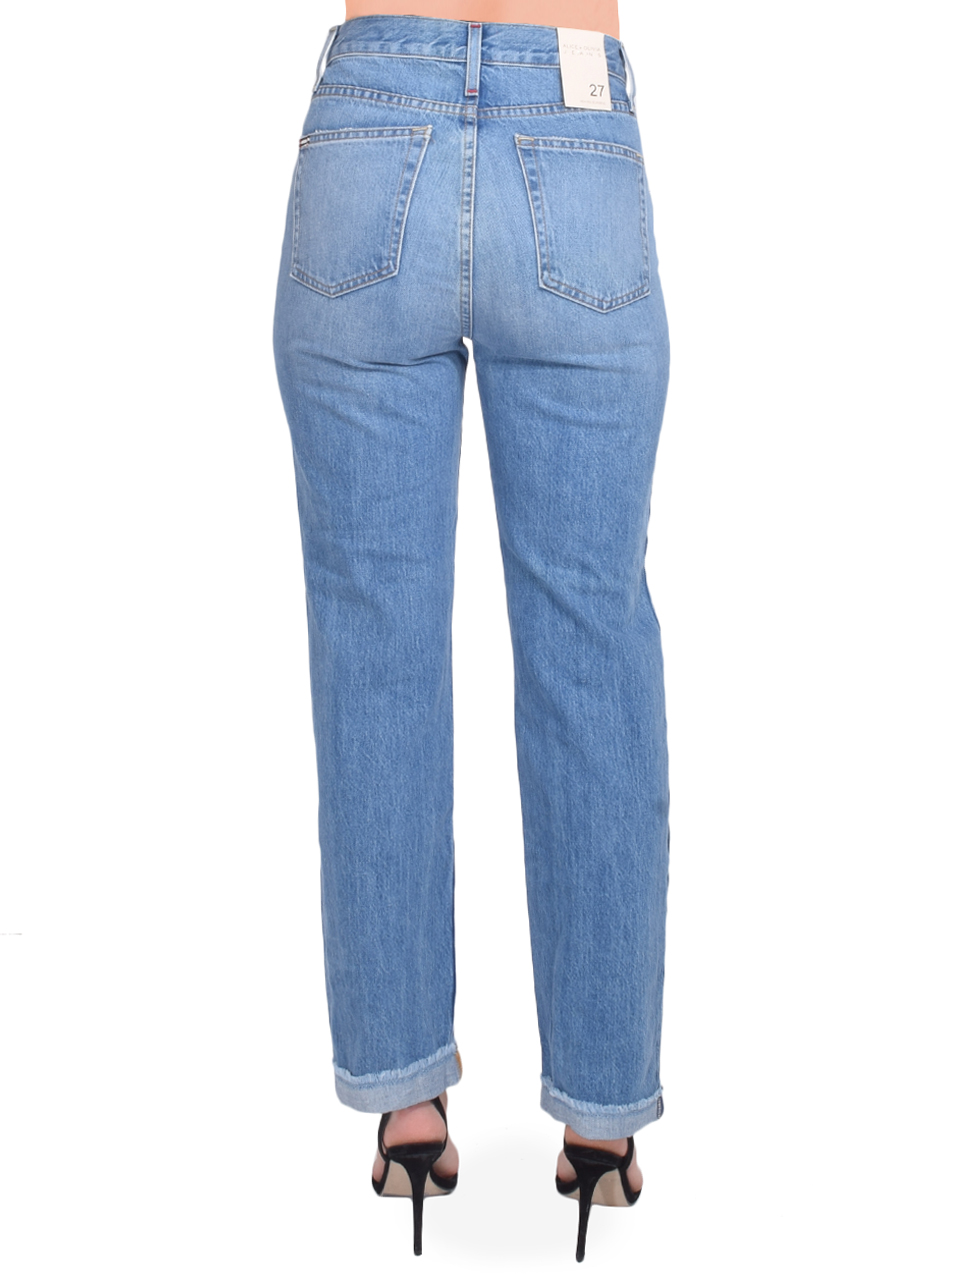 ALICE + OLIVIA Amazing High Rise Boyfriend Jean in Not Yours Back View